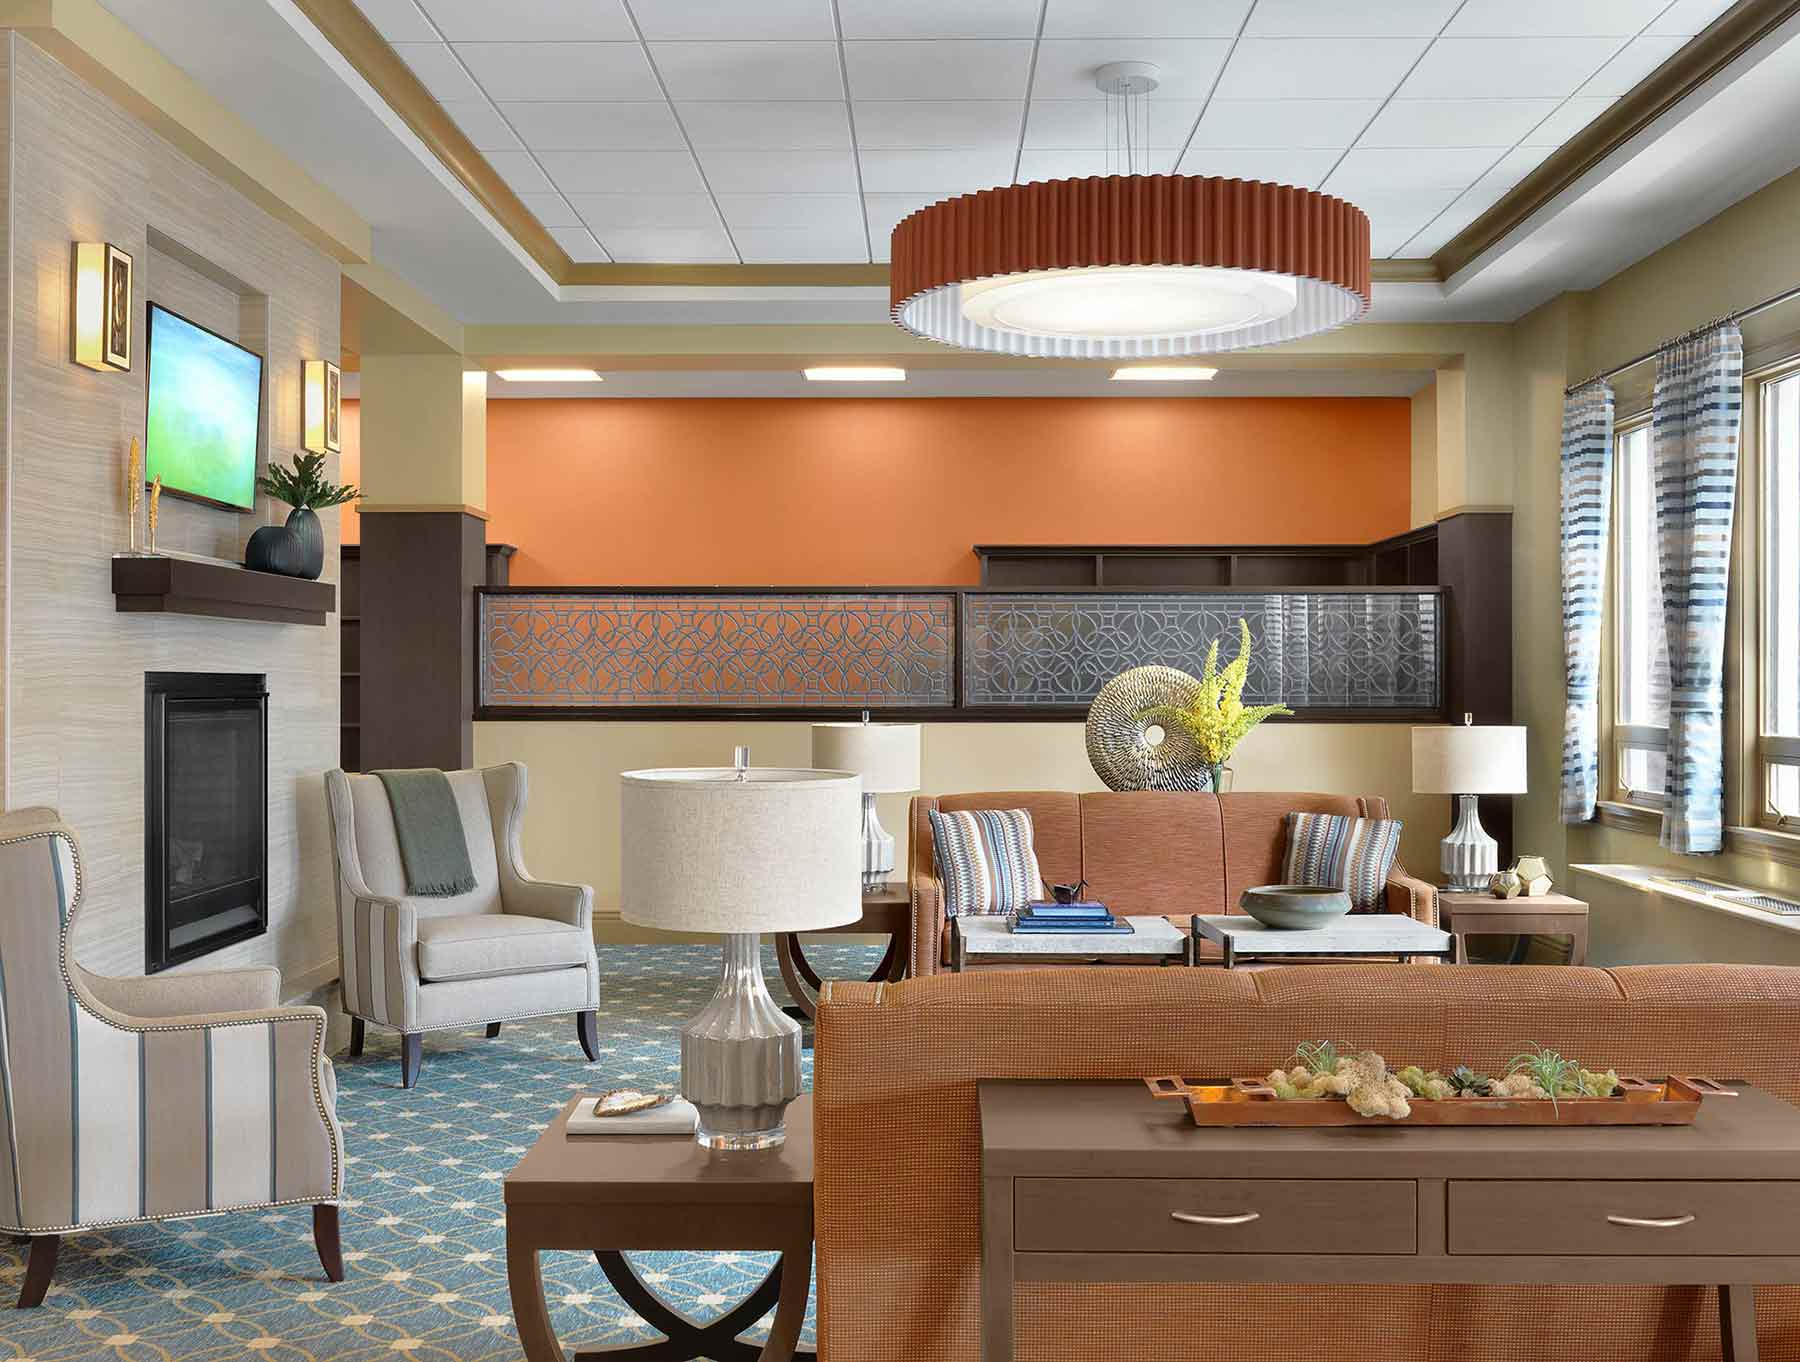 The sitting area at Kingswood Senior Living Located in Kansas City, MO.